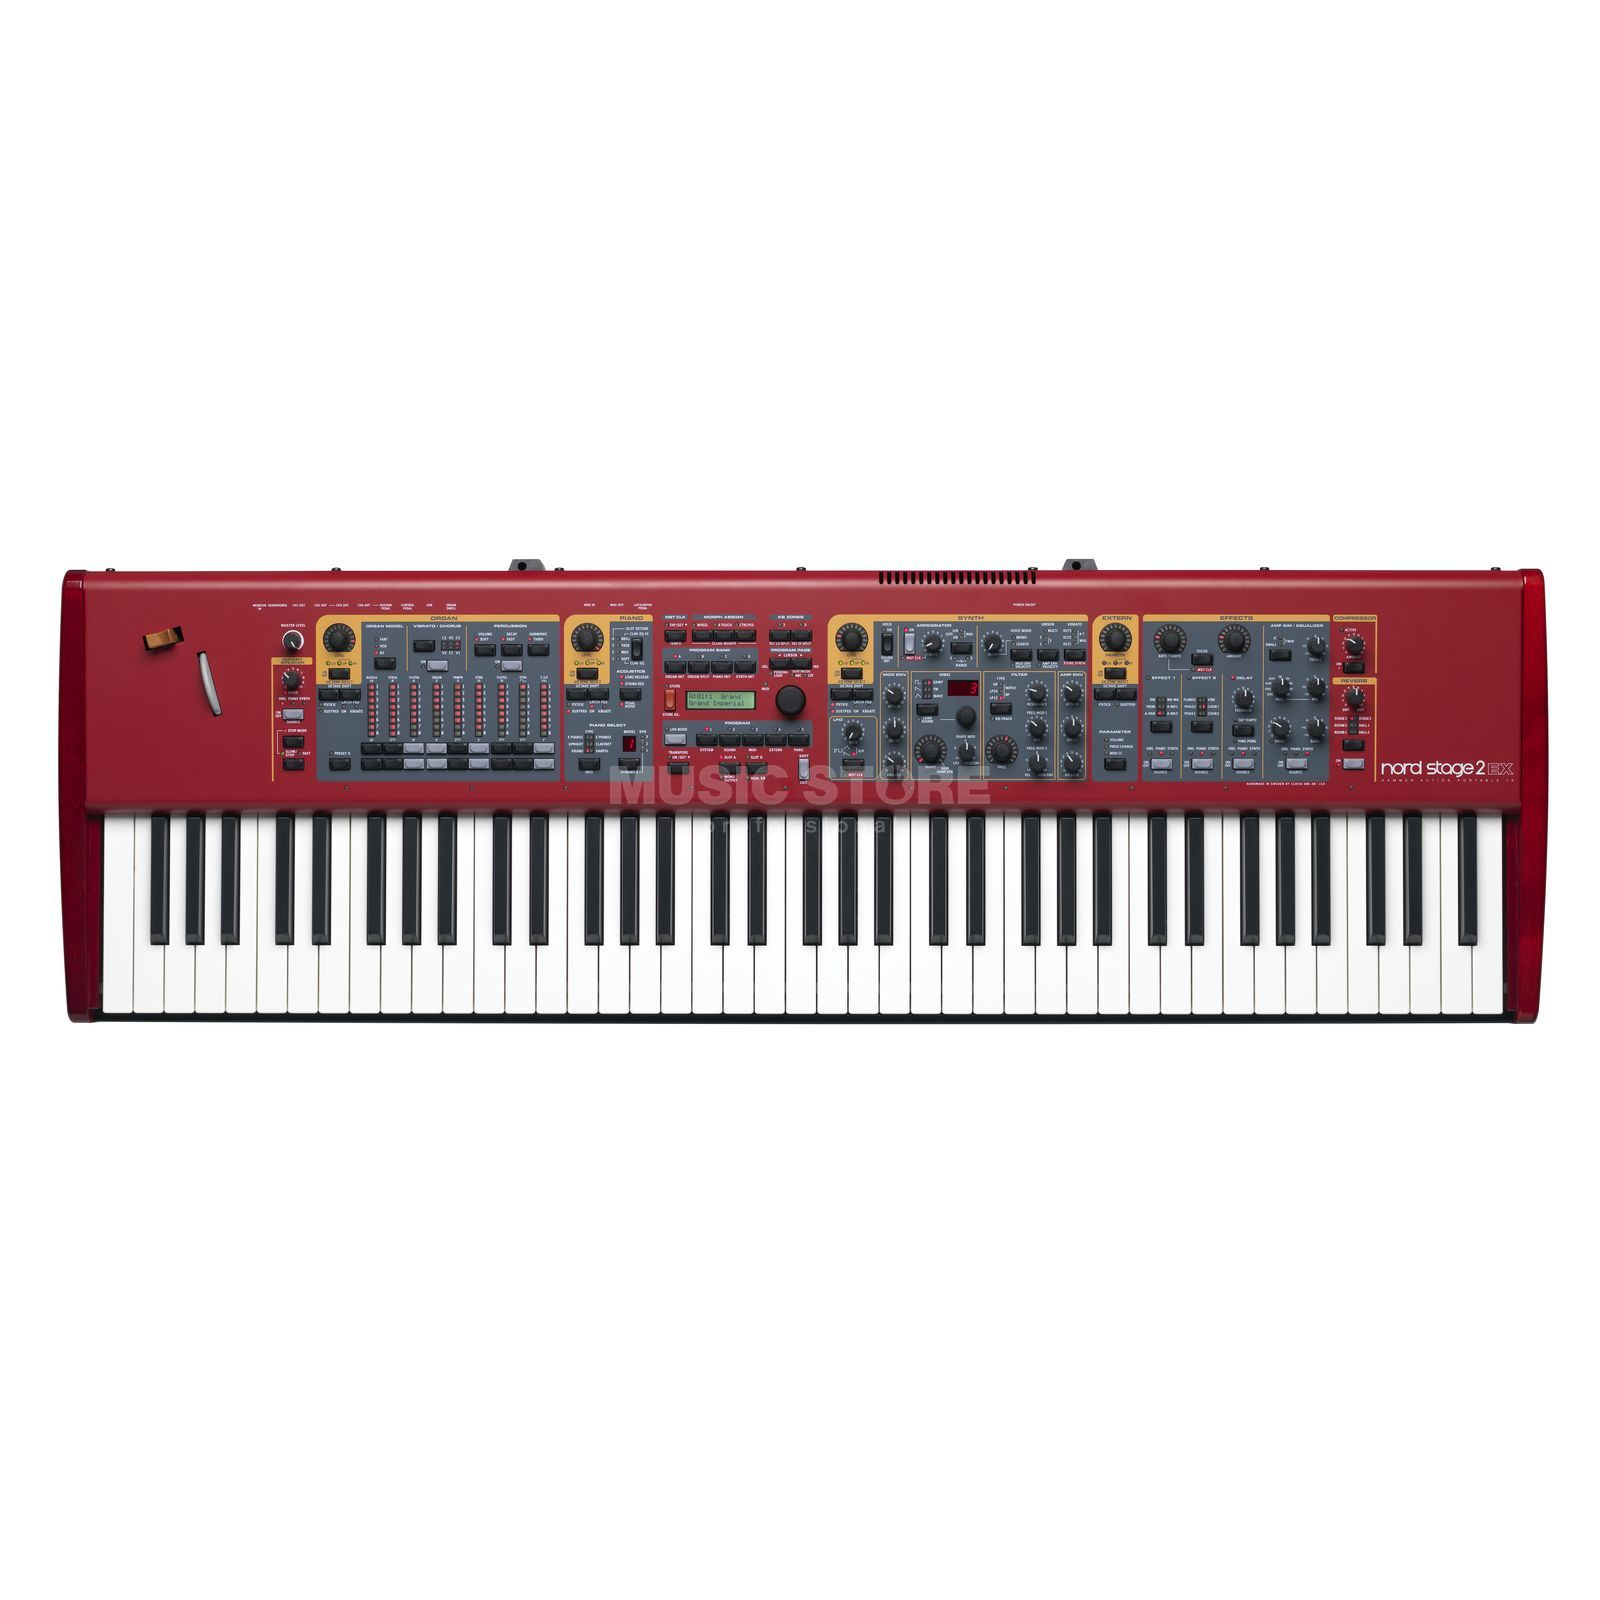 Clavia Nord Stage 2 EX 76 HP Stagepiano Produktbillede